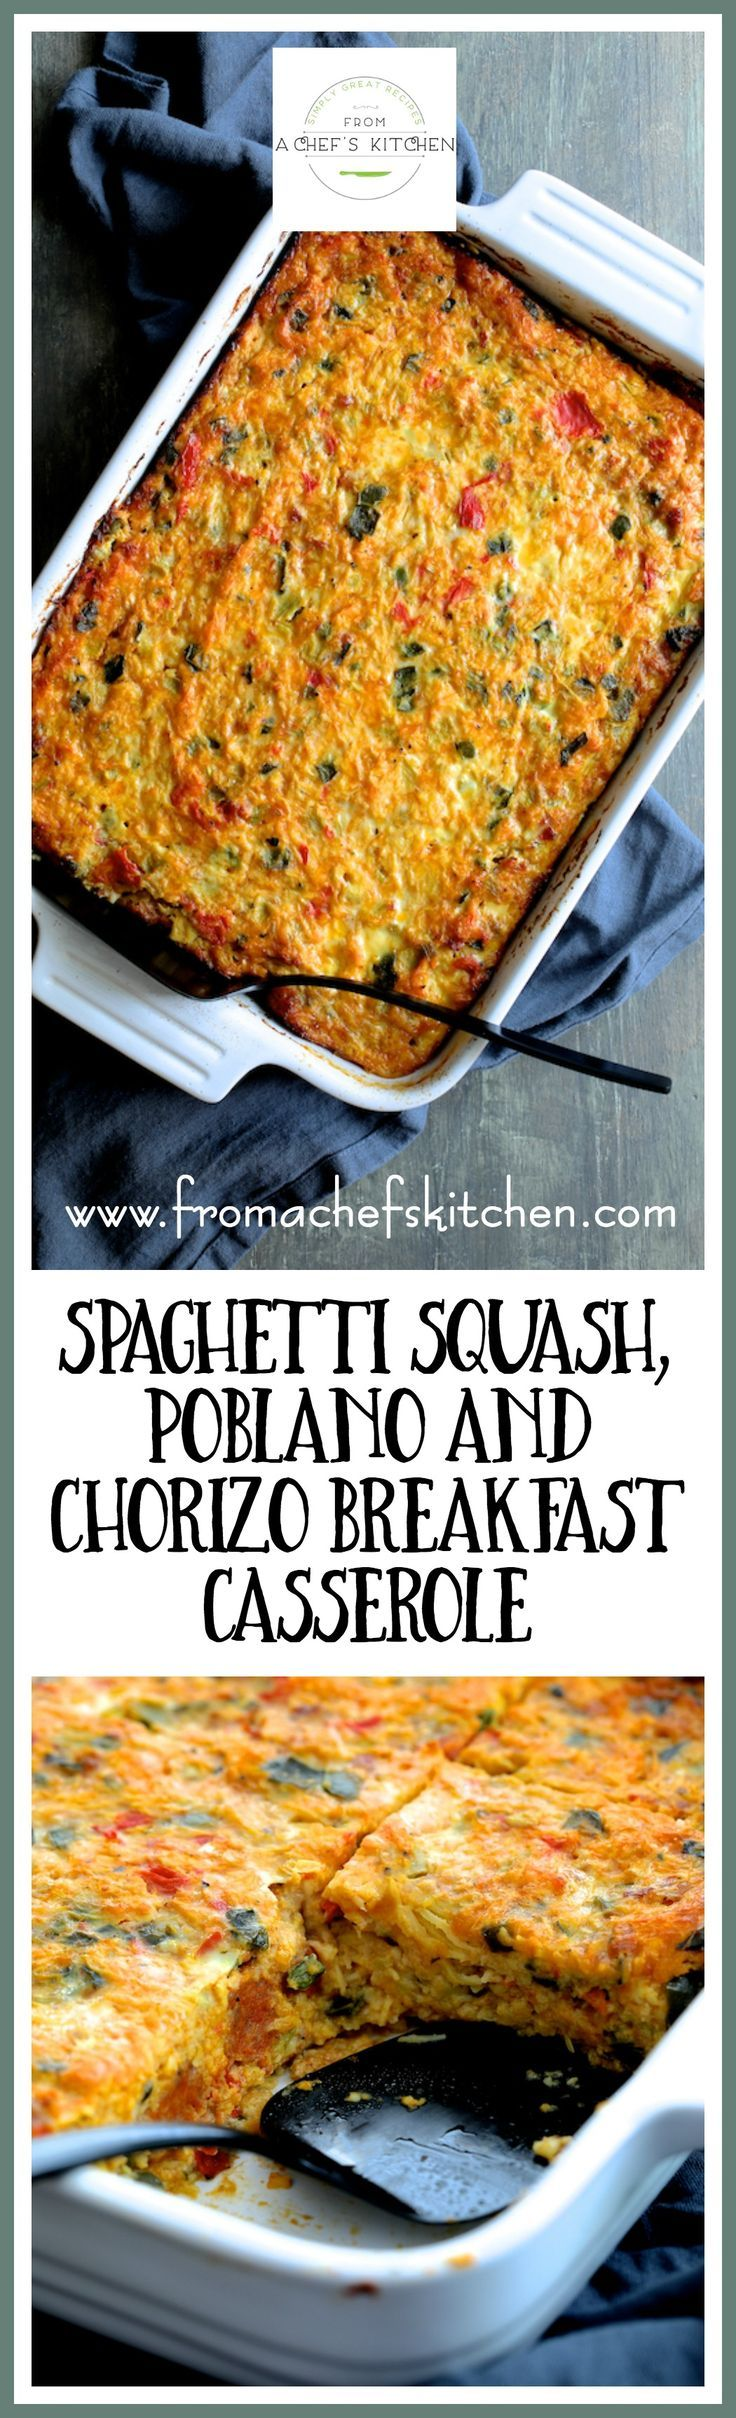 Spaghetti Squash Poblano Chorizo Breakfast Casserole is how you do low-carb for breakfast or brunch with flavor!  This Southwestern-inspired dish can be assembled the day before and when baked, individual pieces reheat beautifully! via @chefcarolb